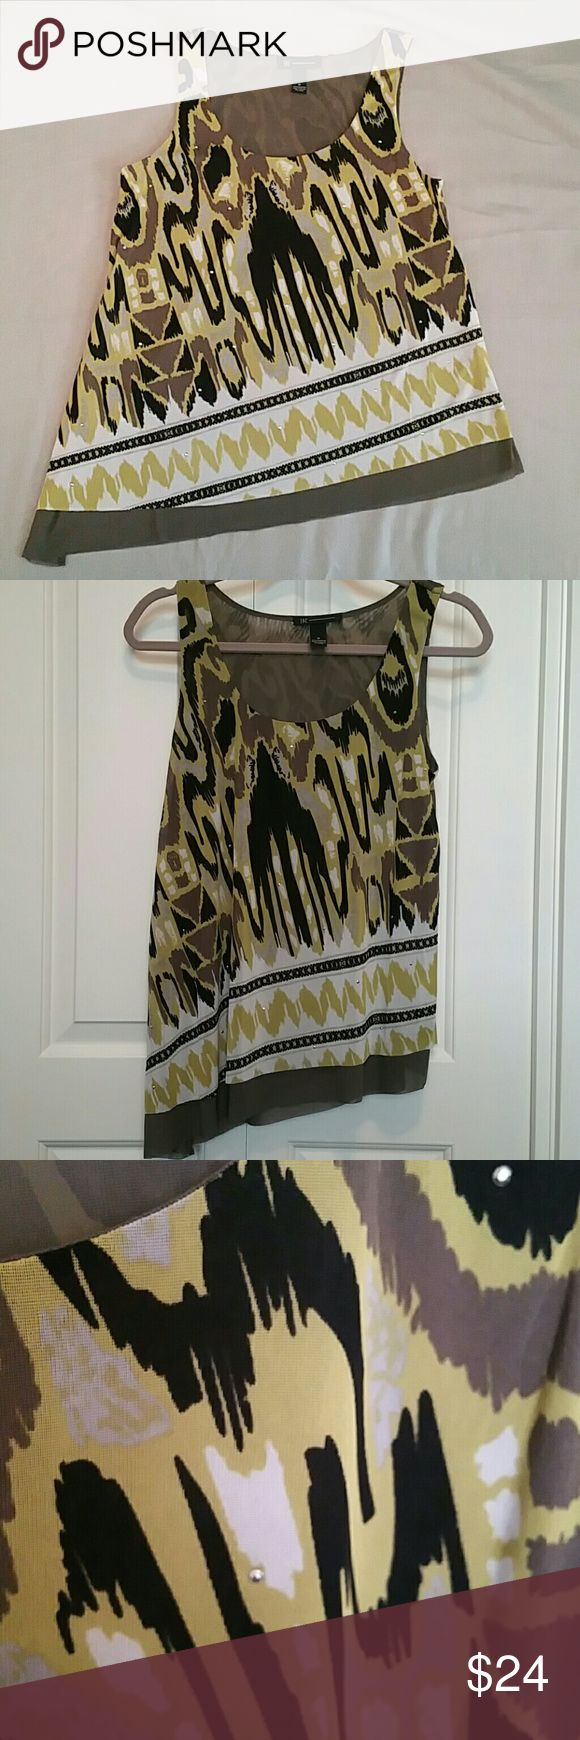 Macy's INC Asymmetrical Tank Size Med I have tried this on but never wore it. It is green / black / white with small Silver studs. 100% Polyester, machine wash cold. It is a loose flowey fit that does not cling. It also has a tier on the bottom (the darker color after the pattern) INC International Concepts Tops Tank Tops